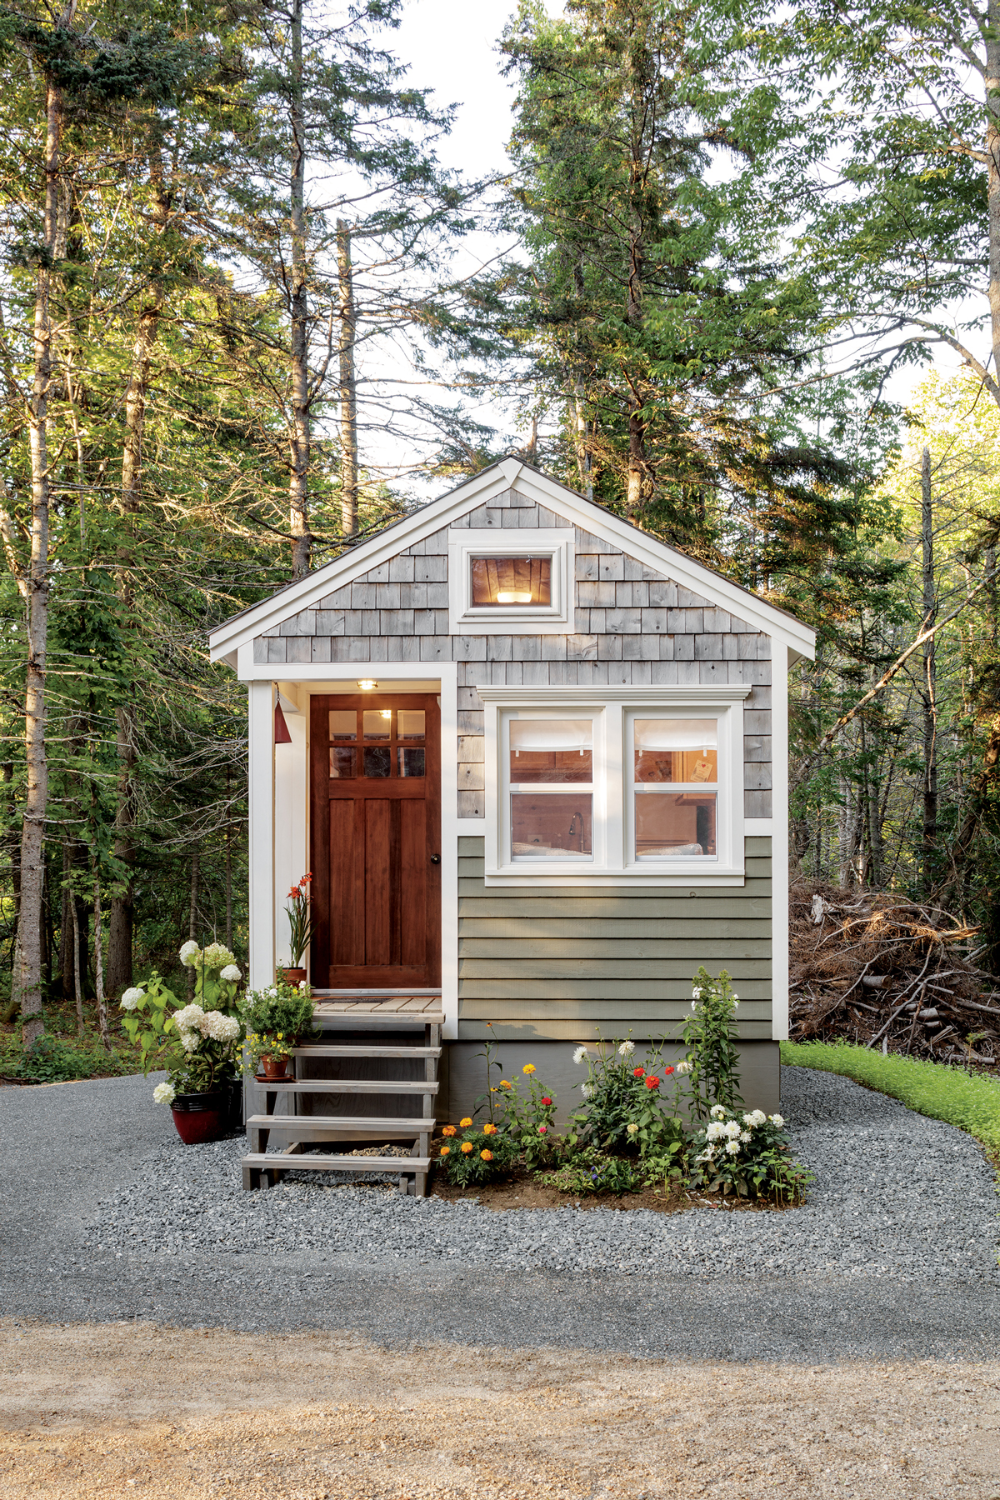 6 Maine Tiny Homes With Lots Of Character In 2020 Tiny House Village Tiny House Exterior Tiny House Ideas Cottages